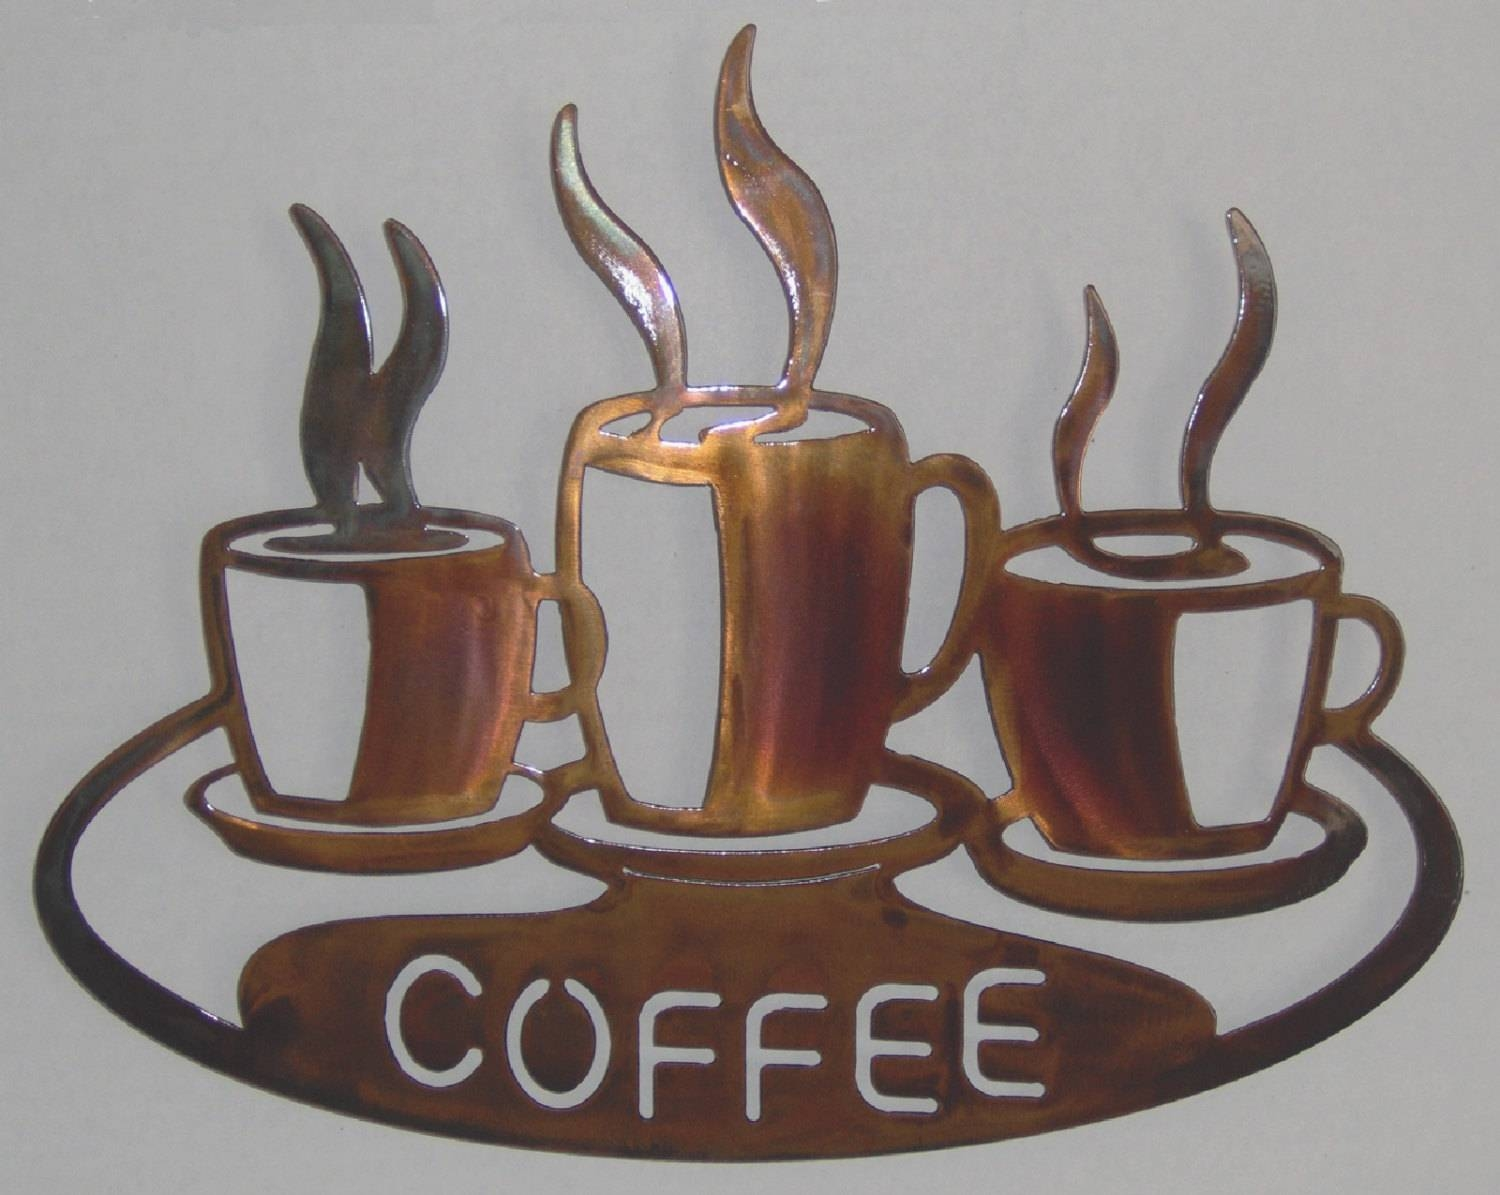 Coffee Cups On Platter Metal Wall Art Inside Most Up To Date Coffee Cup Metal Wall Art (View 7 of 20)